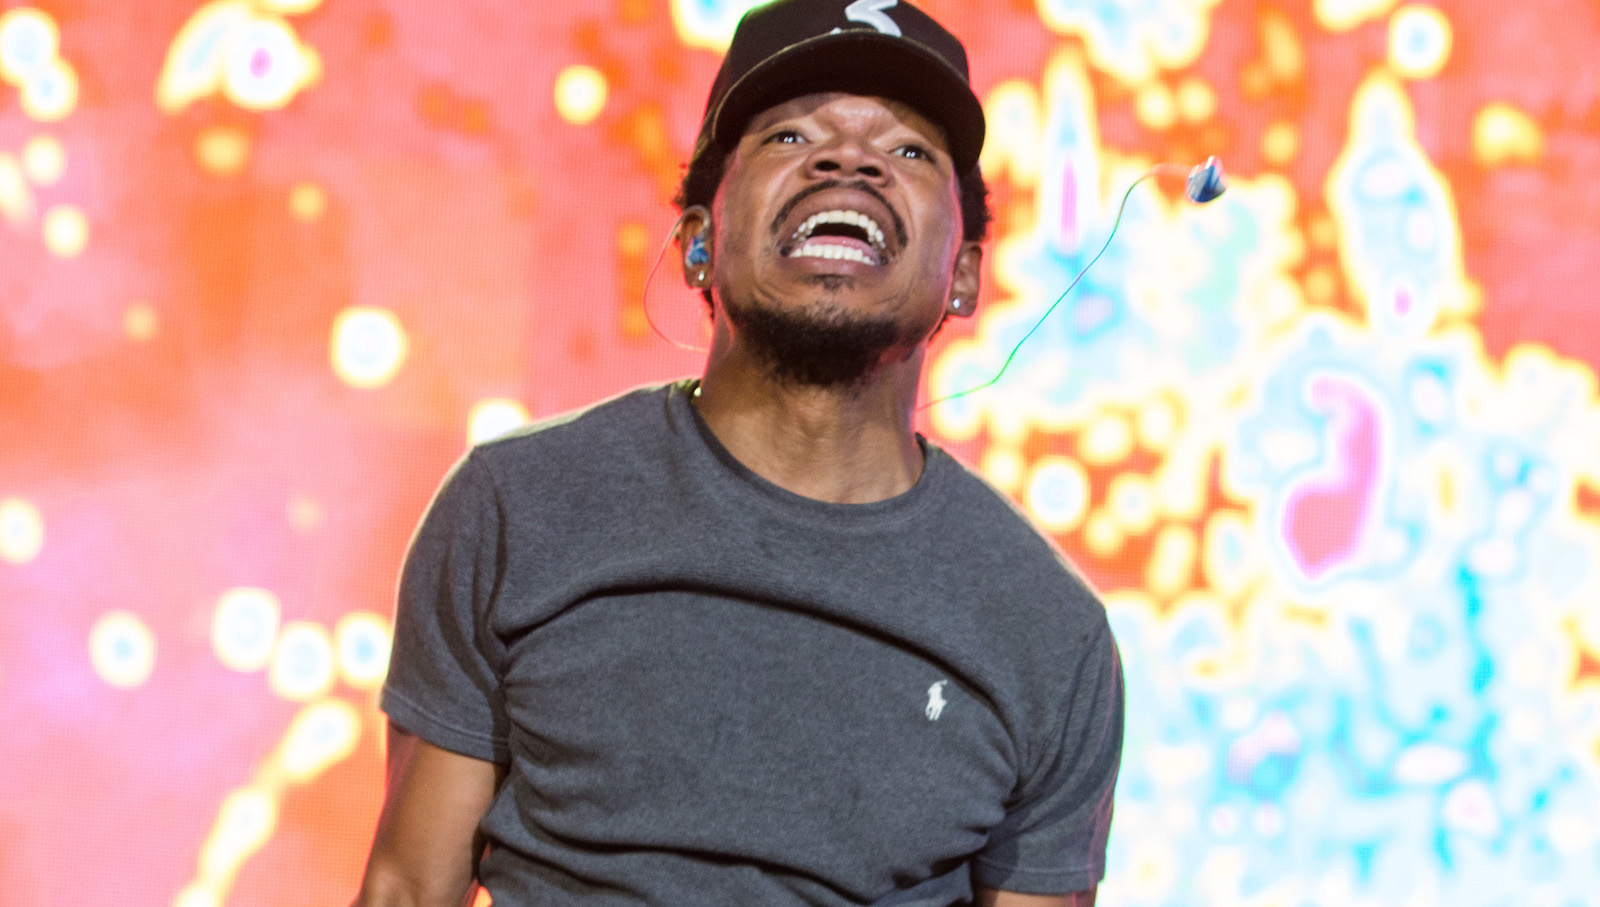 Chance The Rapper performs at The Budweiser Made In America Festival on Sunday, Sept. 4, 2016, in Philadelphia. (Photo by Michael Zorn/Invision/AP)